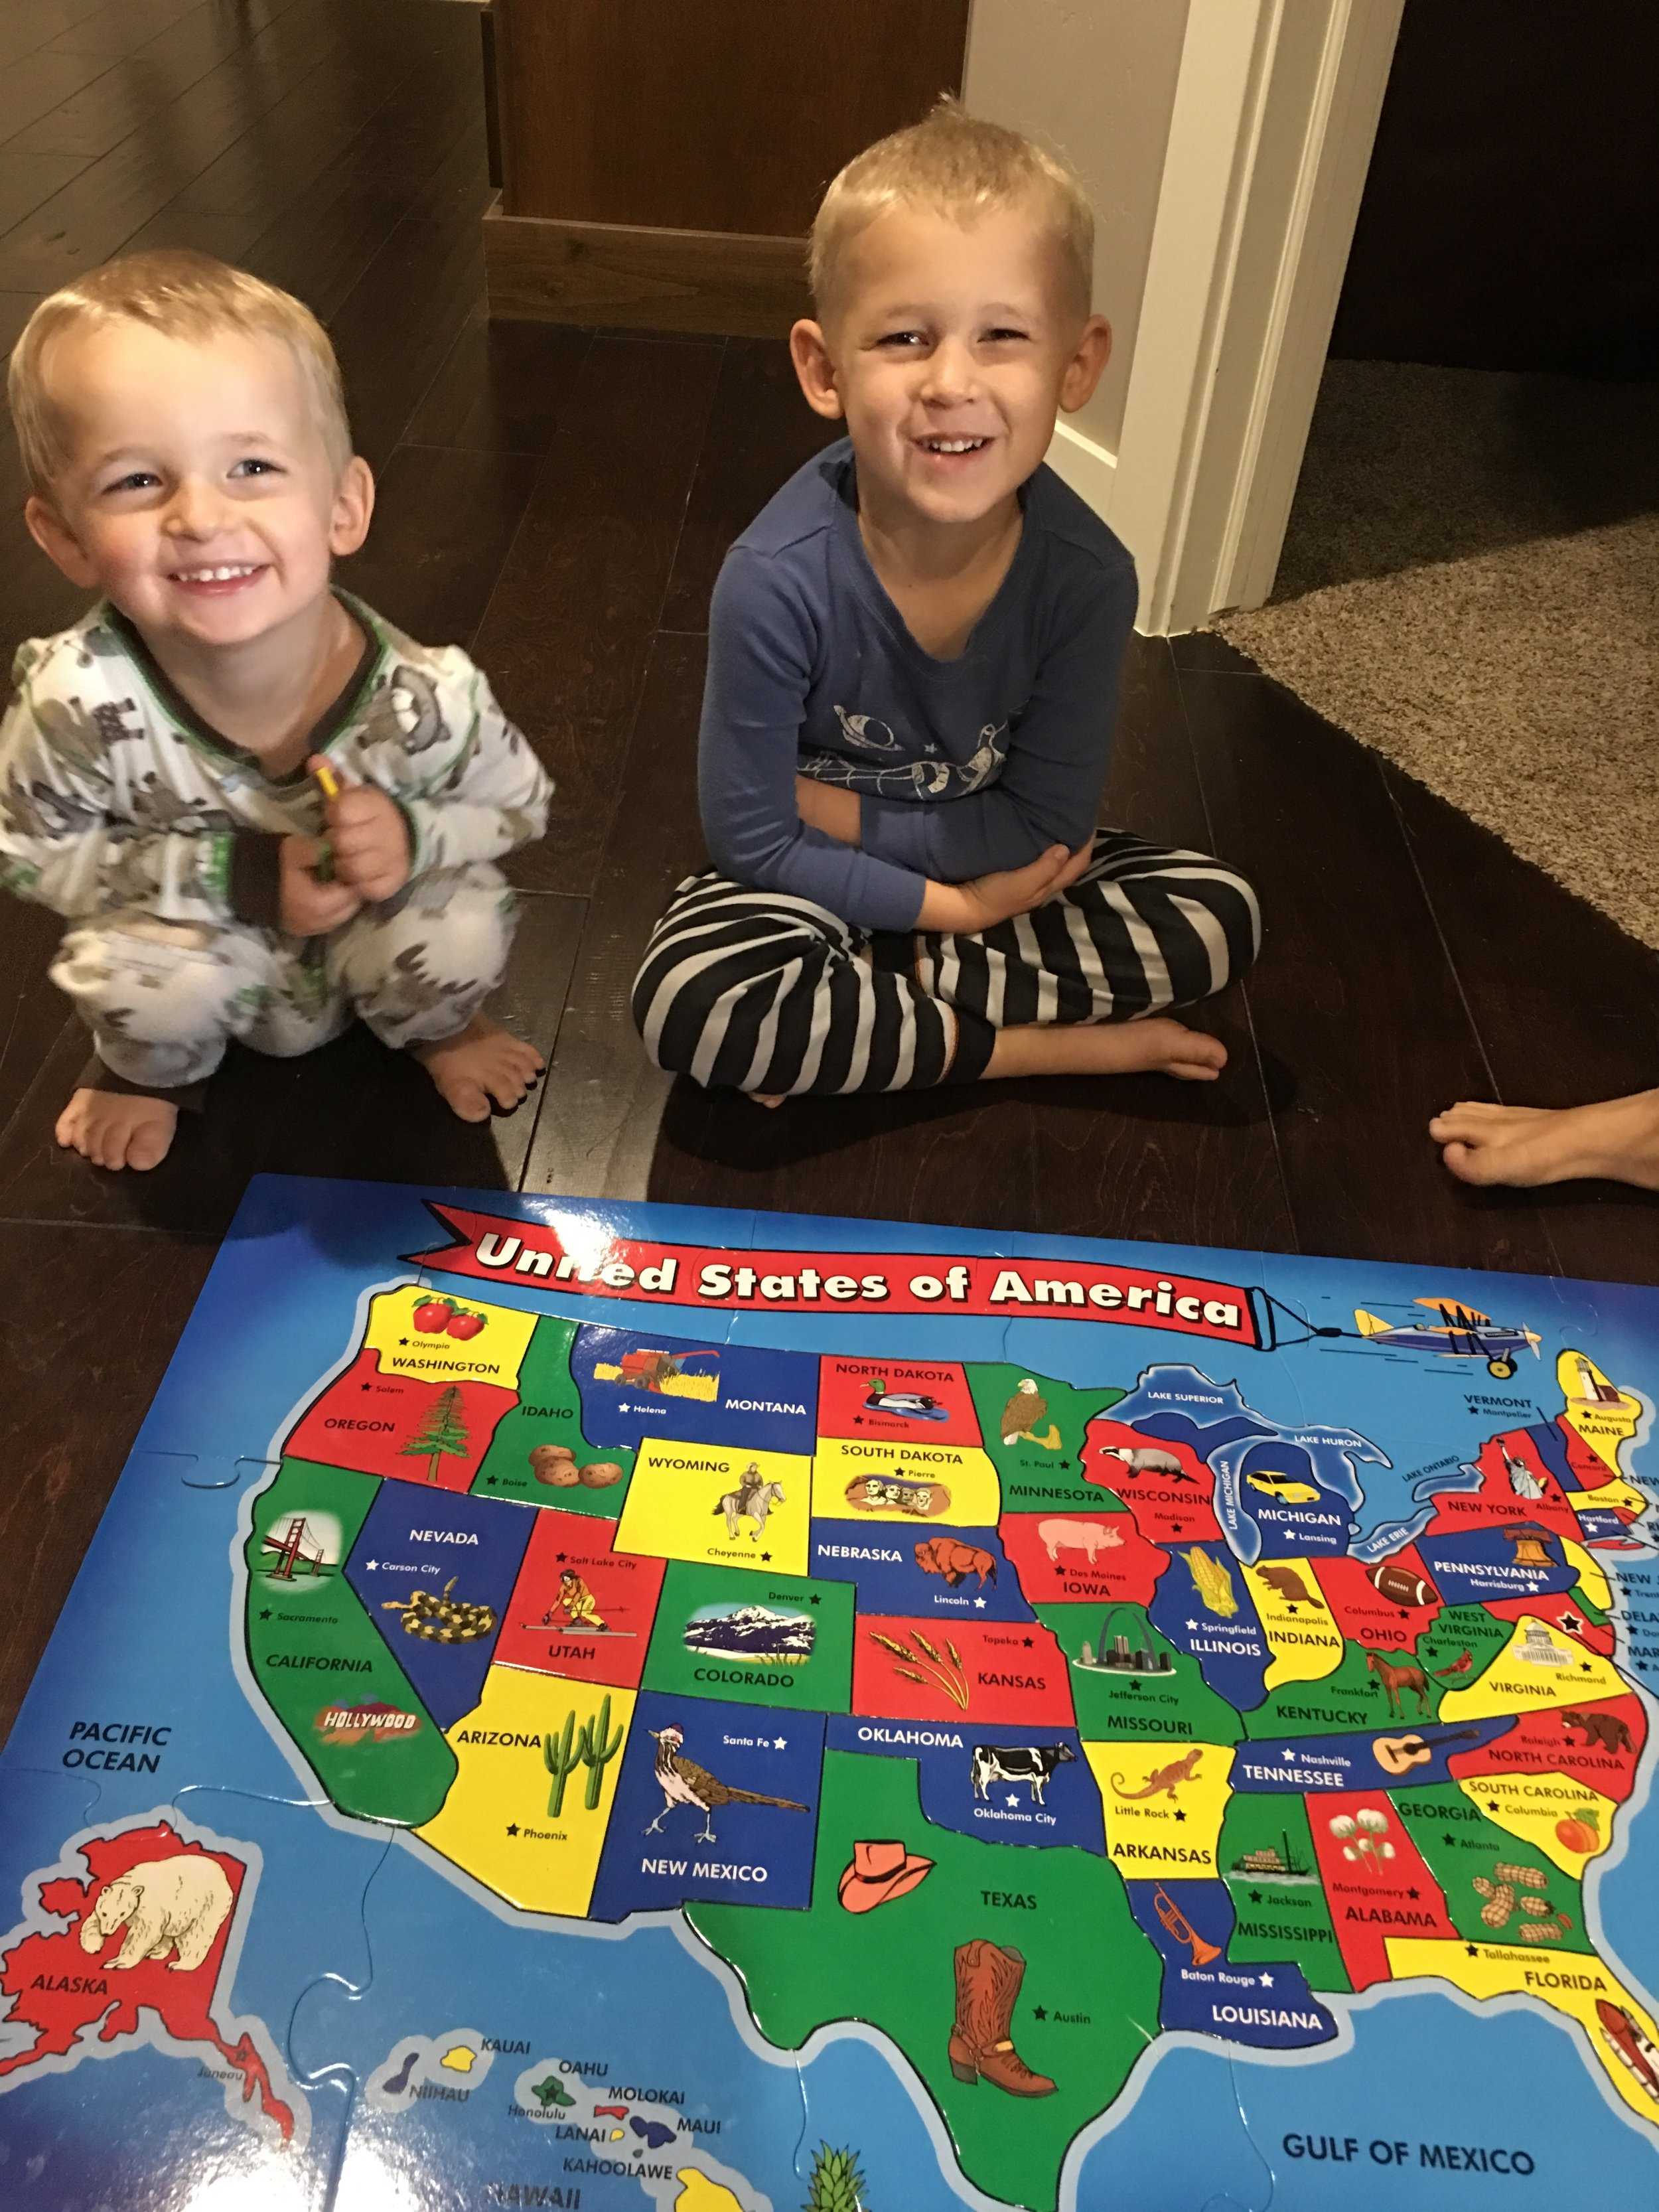 Keeping the littles busy (and learning) with a puzzle.